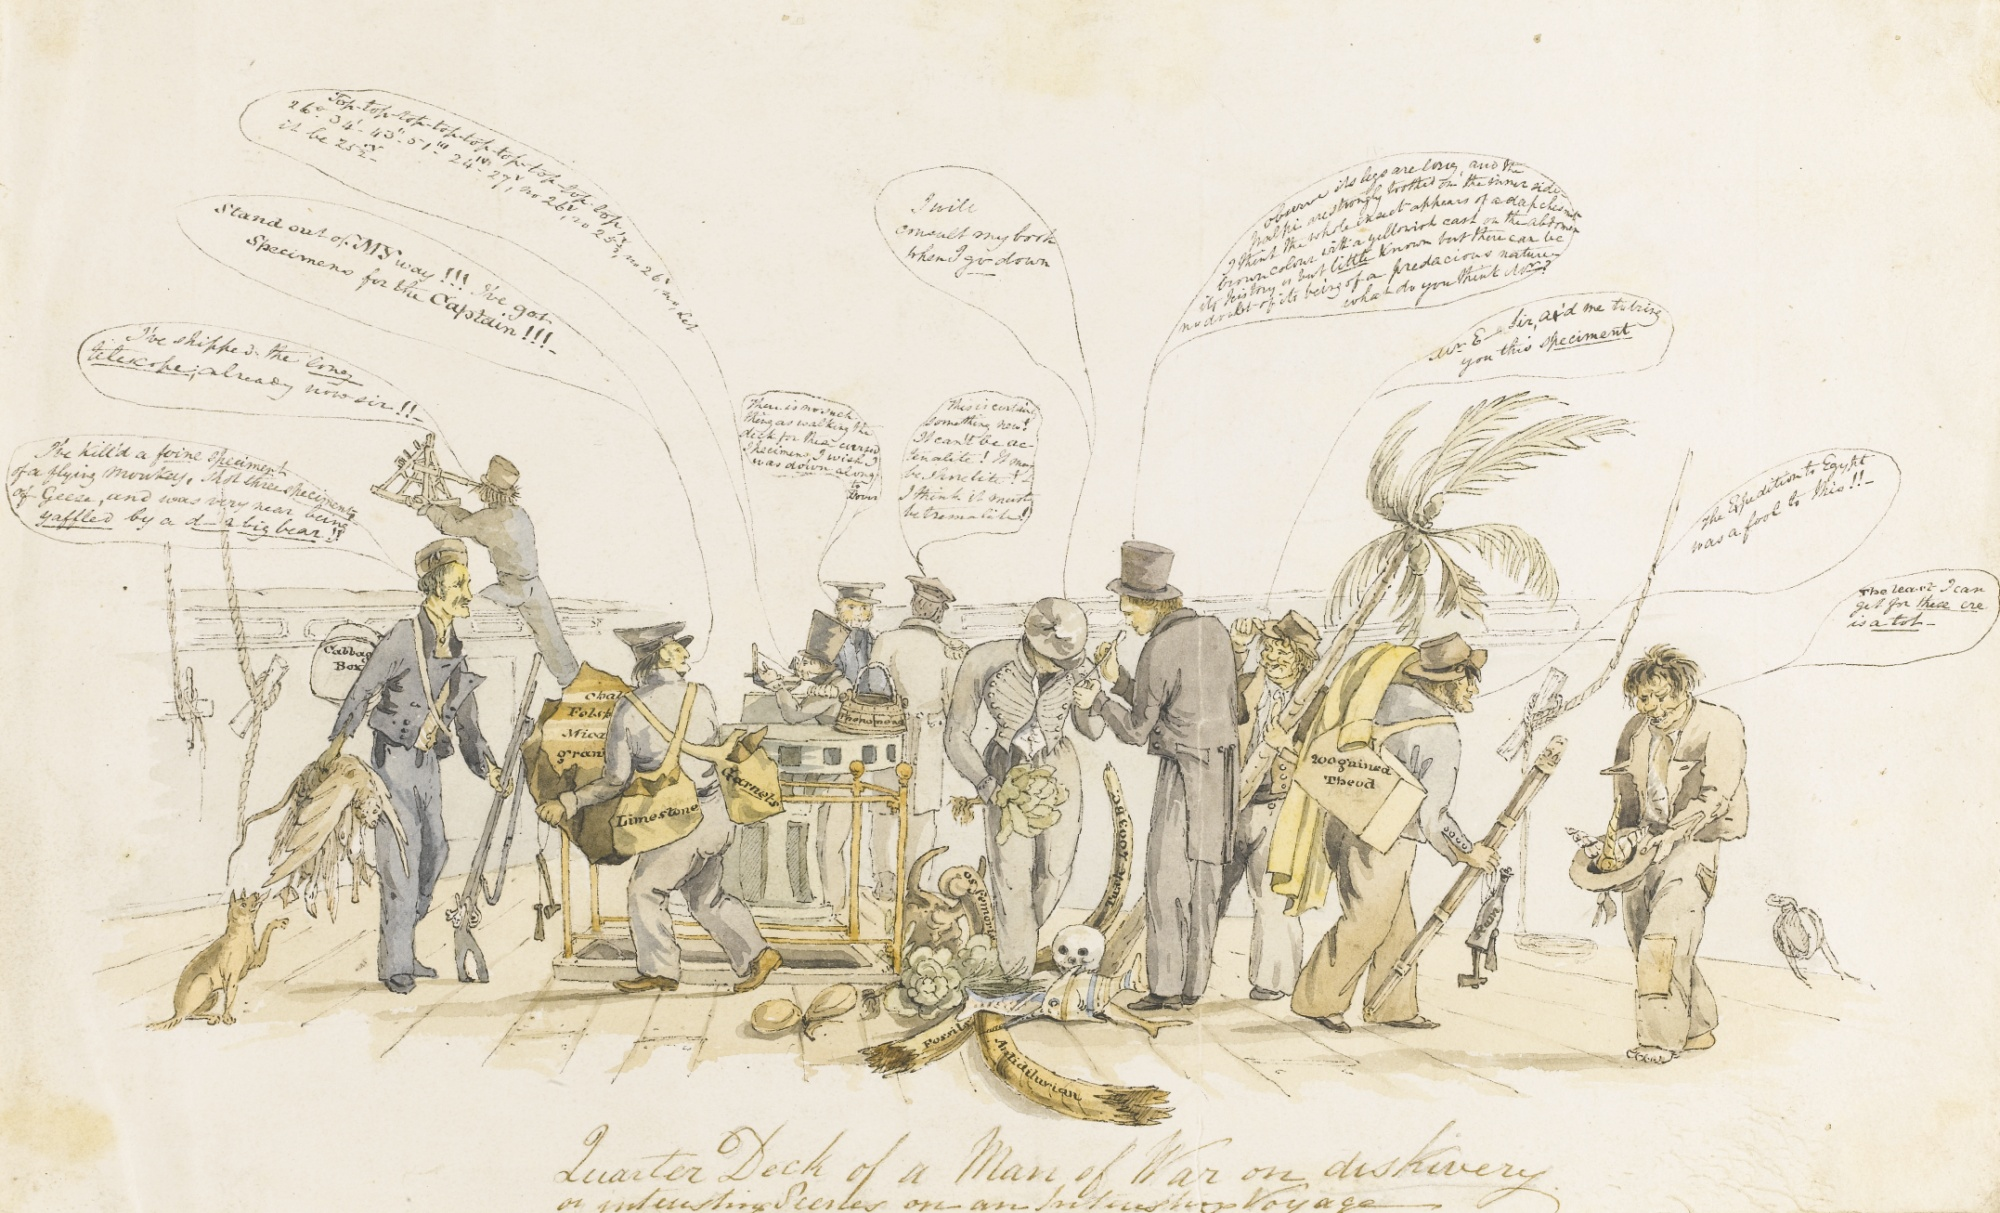 Interesting Scenes on an Interesting Voyage by Augustus Earle